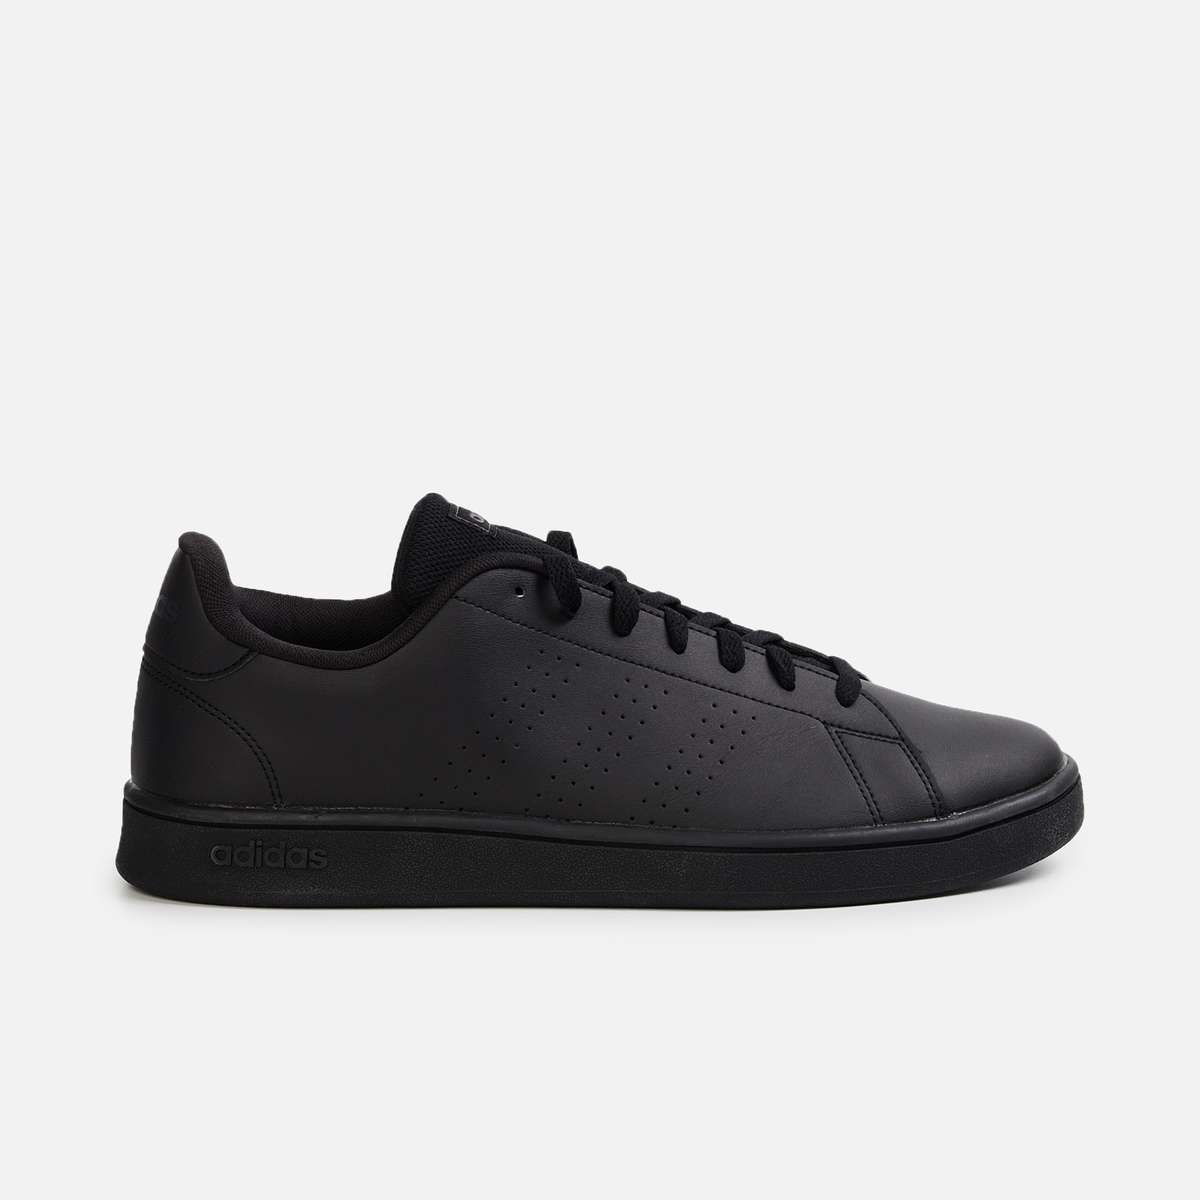 3.ADIDAS Men Perforated Casual Lace-Up Shoes